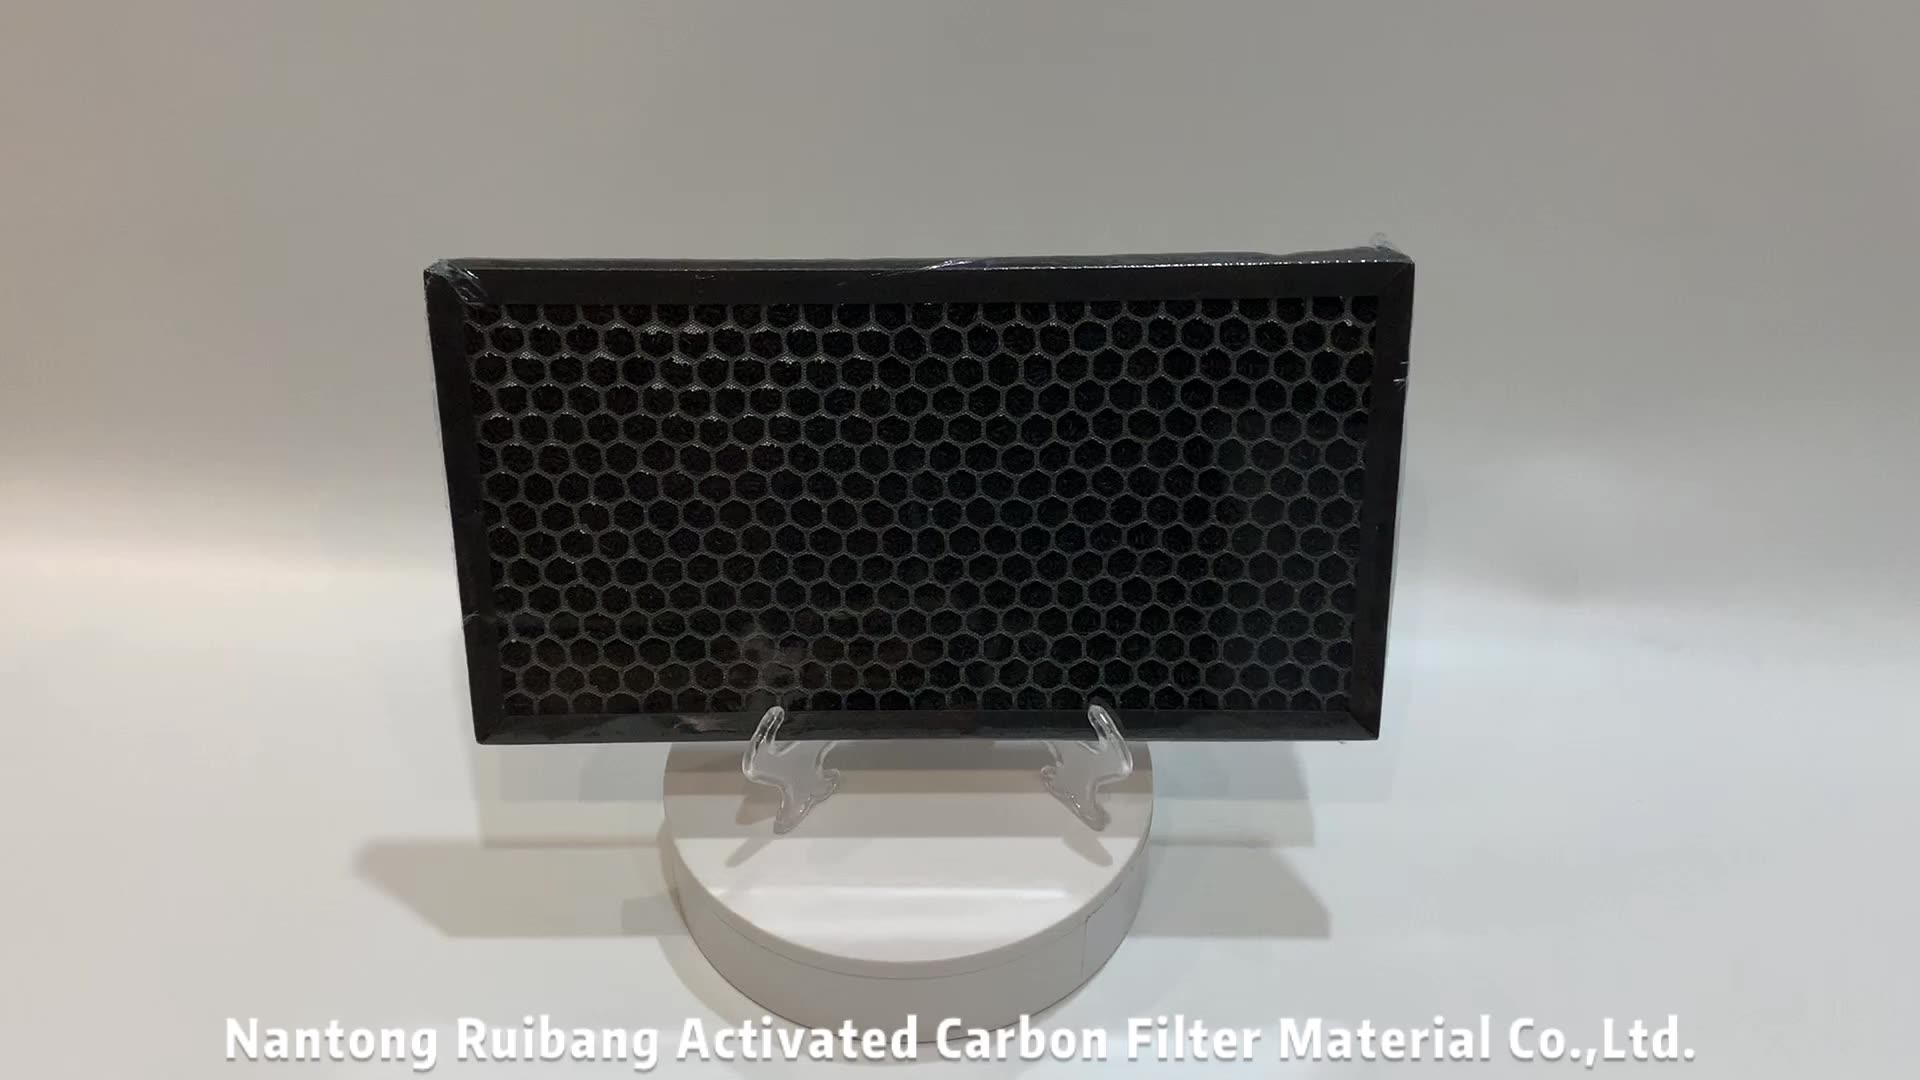 Granular Carbon Filter Cartridge For Air Cleaner, Air Purifier And Air Filtration System